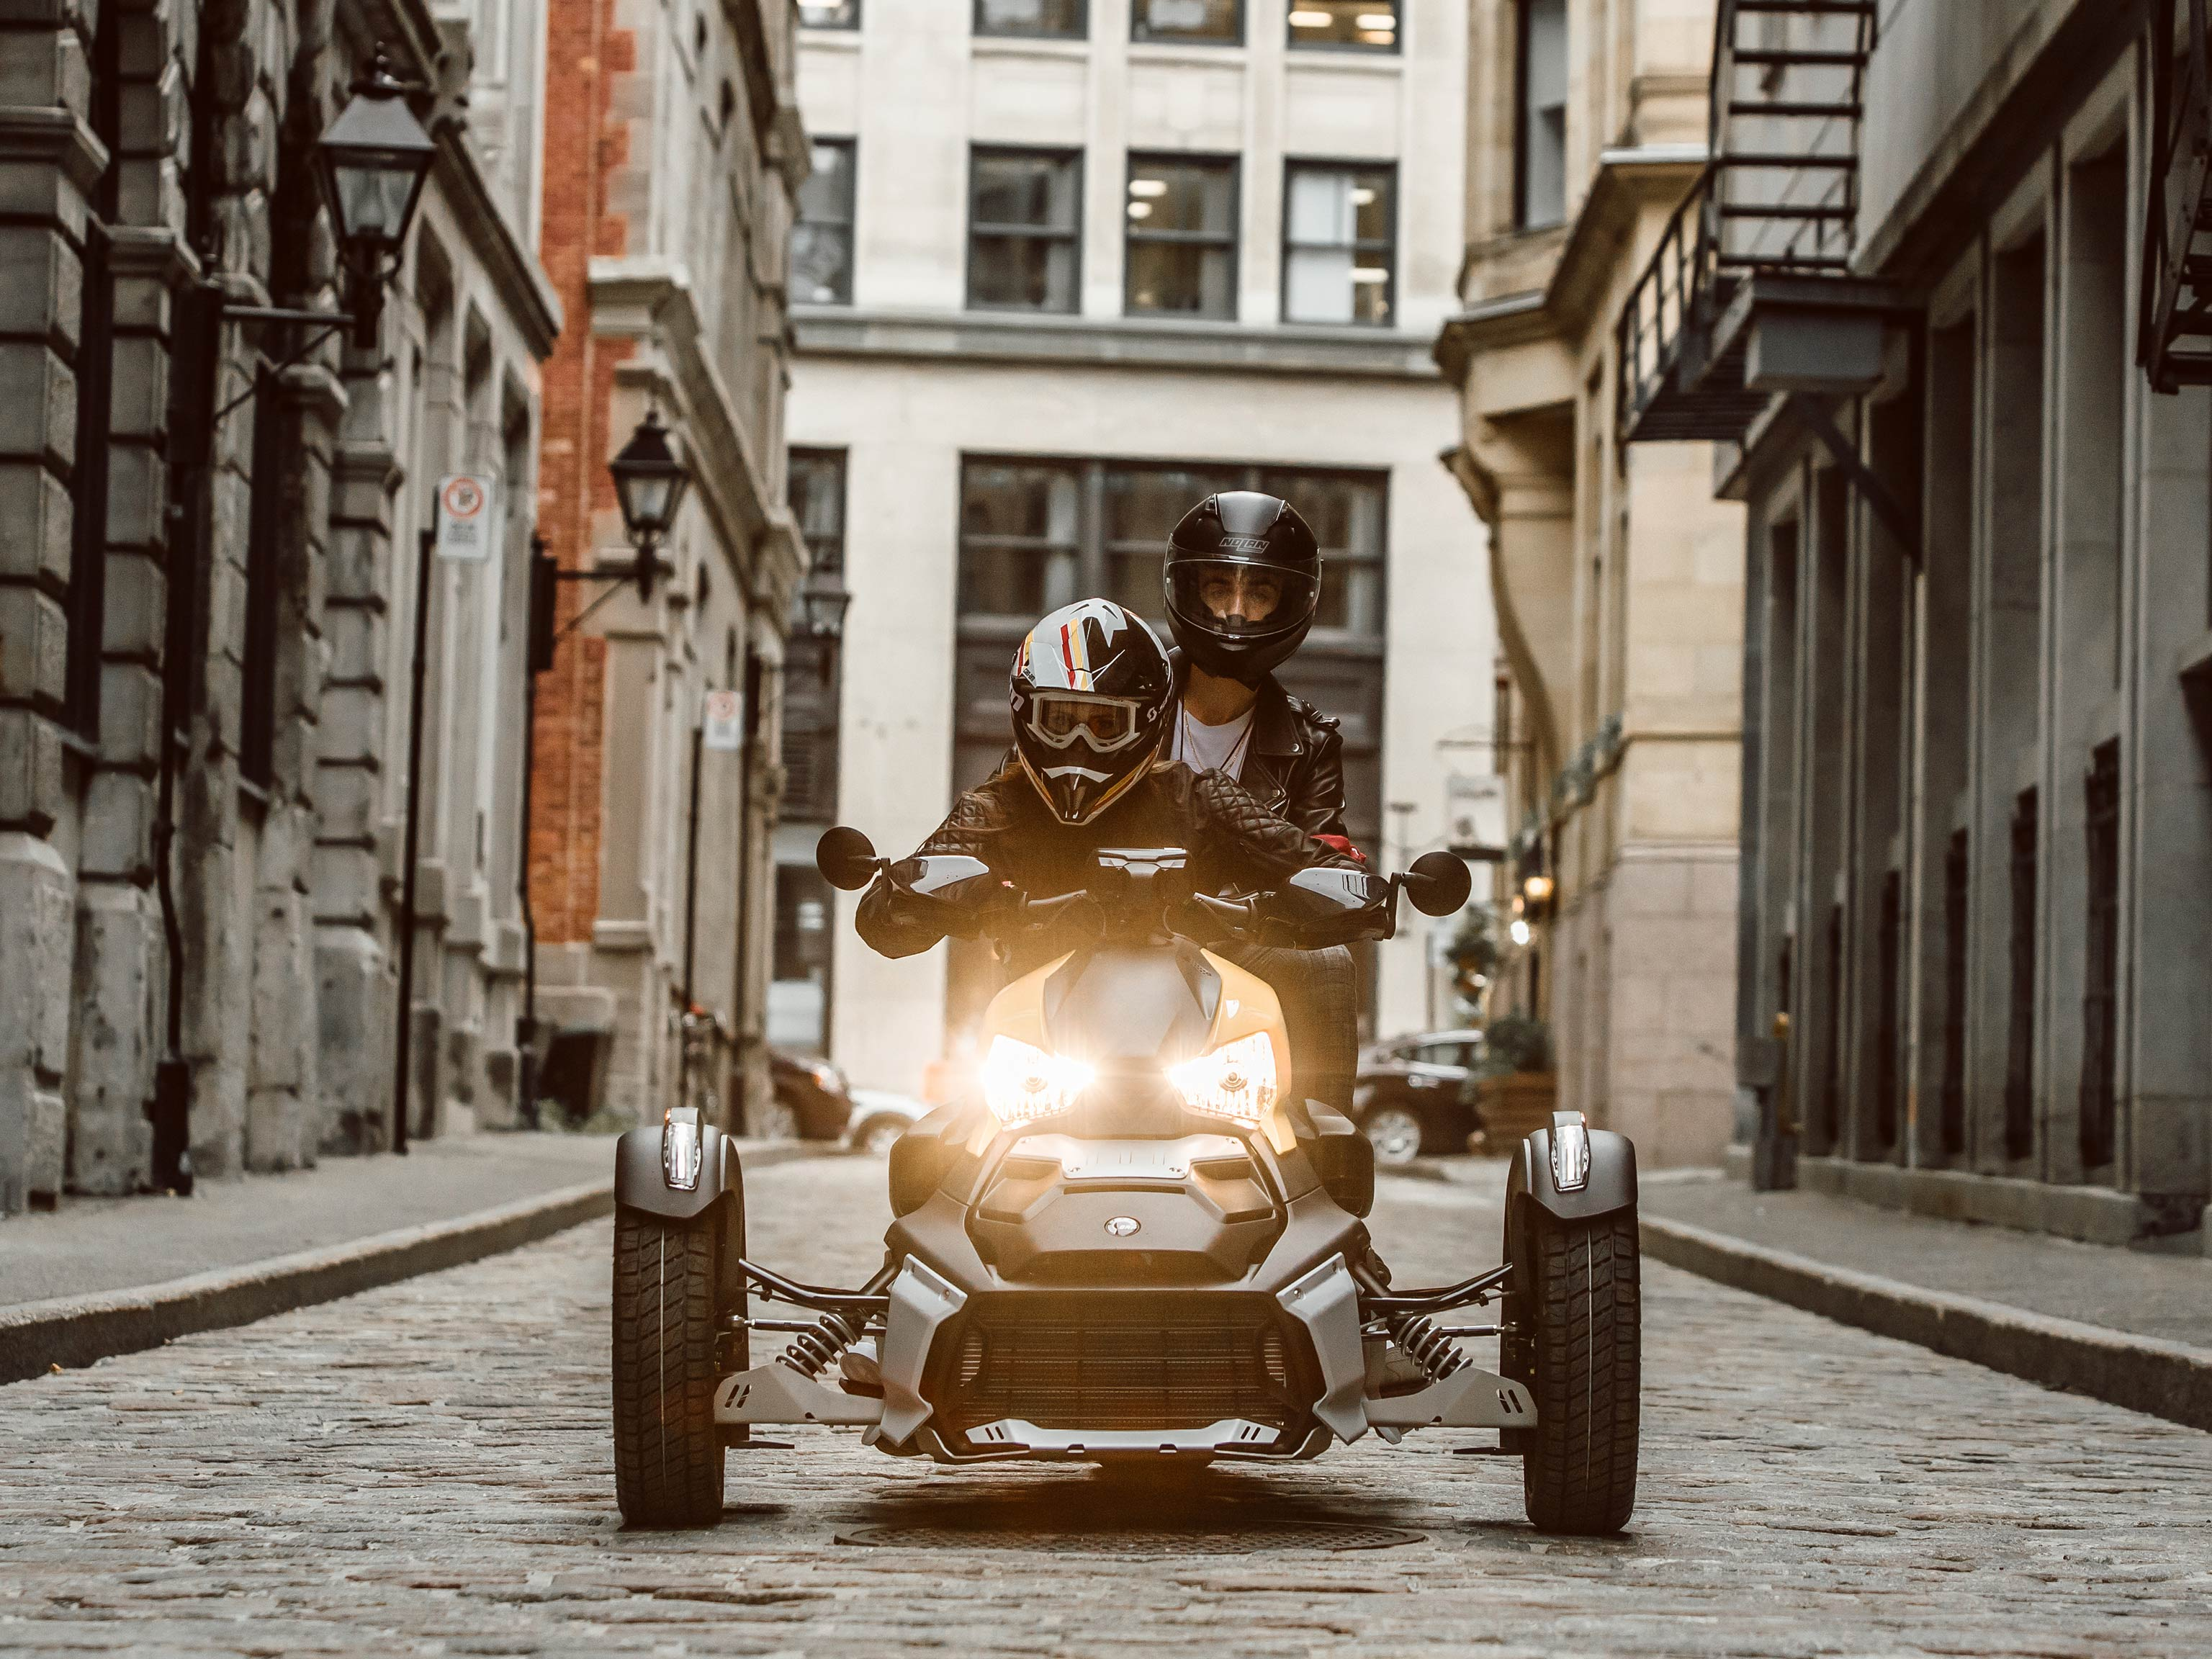 A couple riding a Can-Am vehicle along a narrow cobblestone street